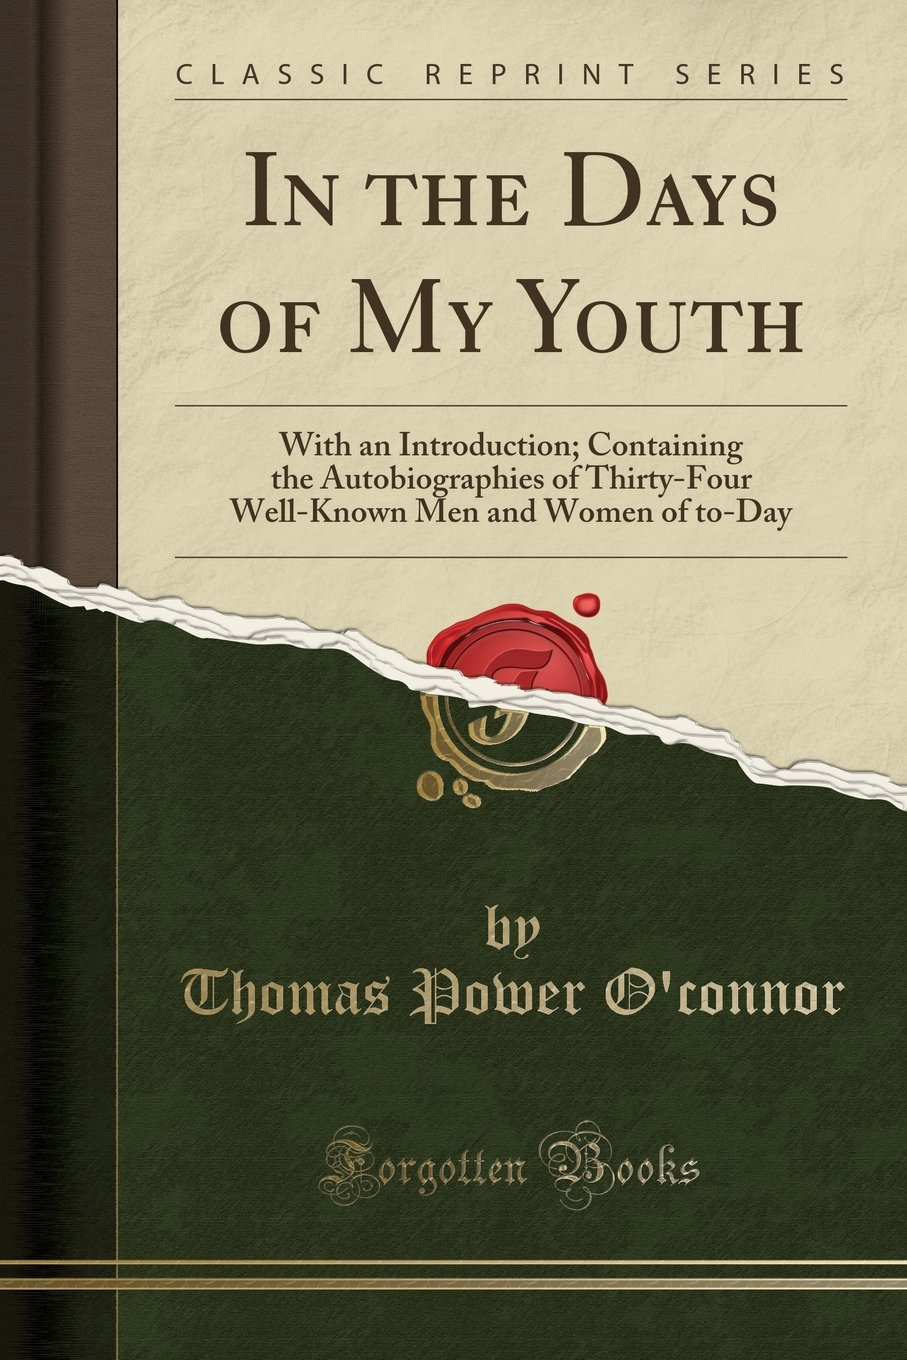 Download In the Days of My Youth: With an Introduction; Containing the Autobiographies of Thirty-Four Well-Known Men and Women of to-Day (Classic Reprint) ebook